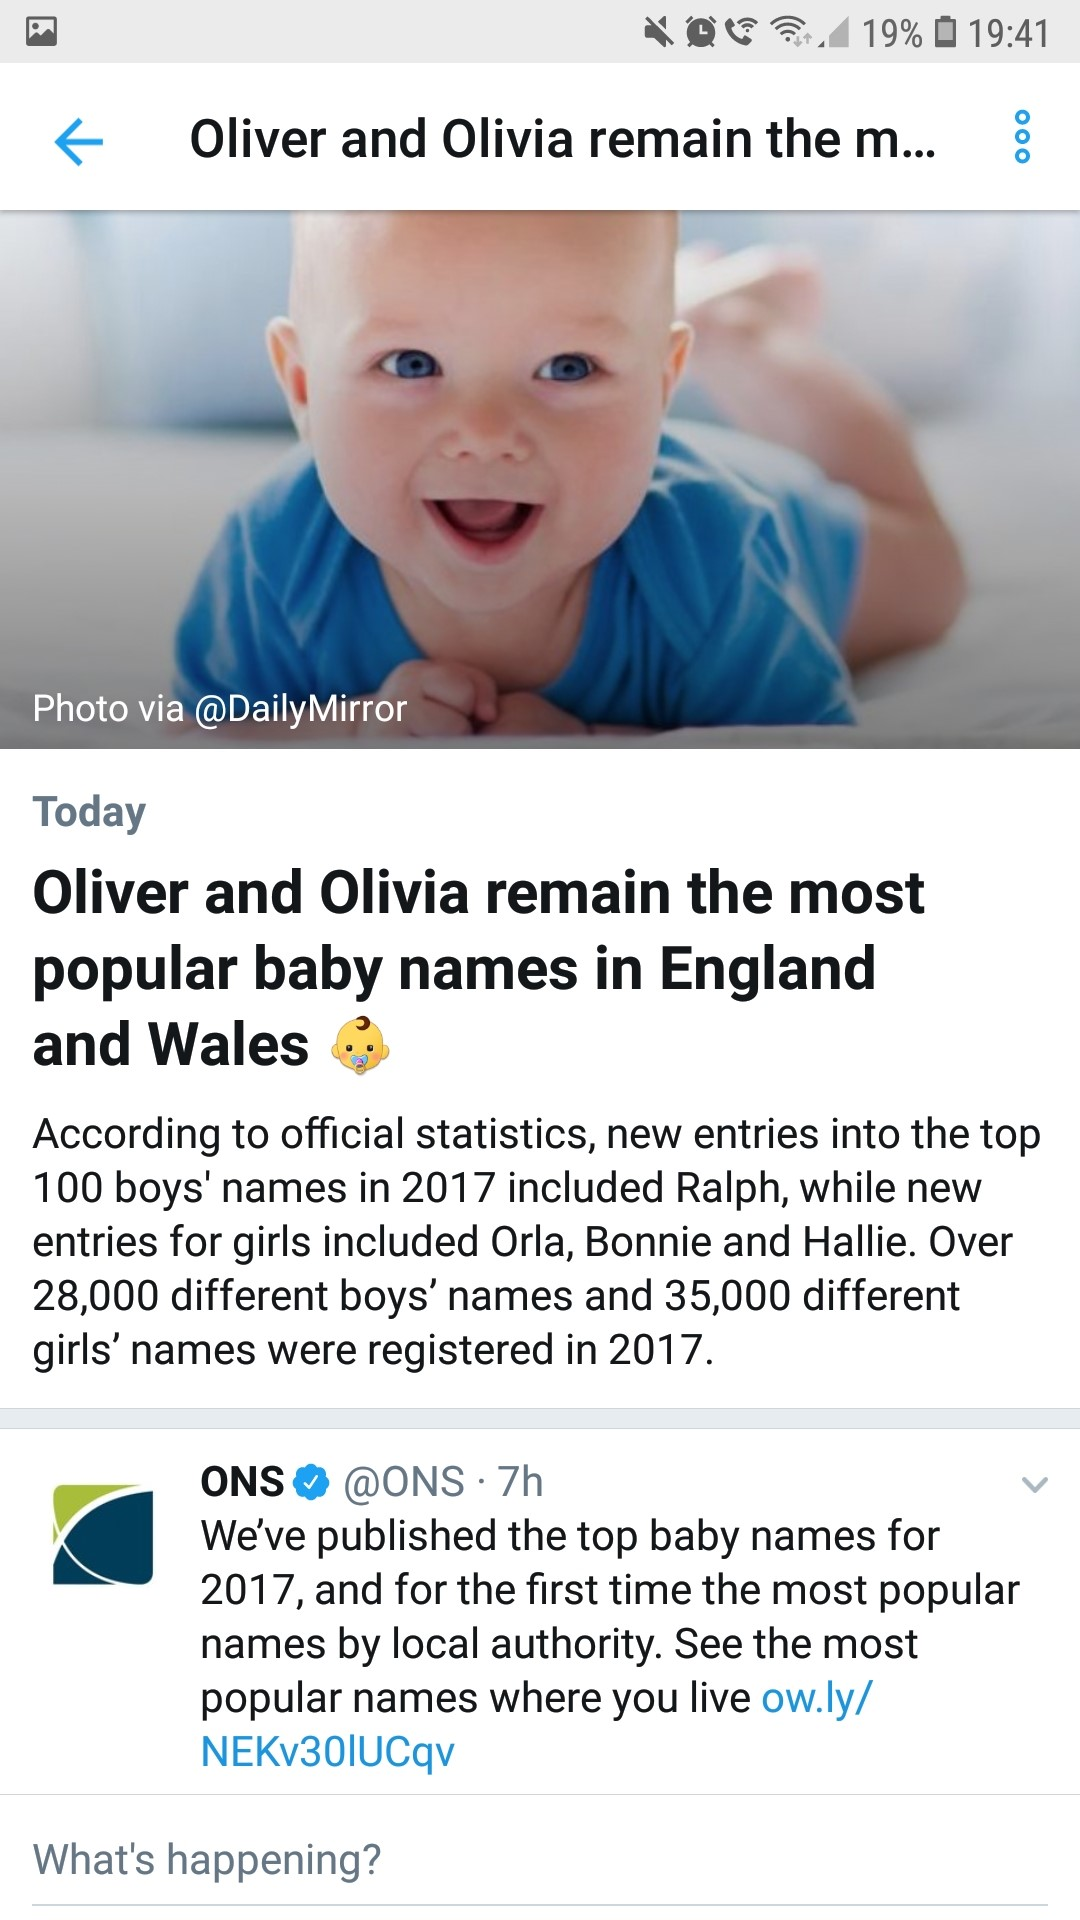 A screenshot of Twitter showing the baby name curated content